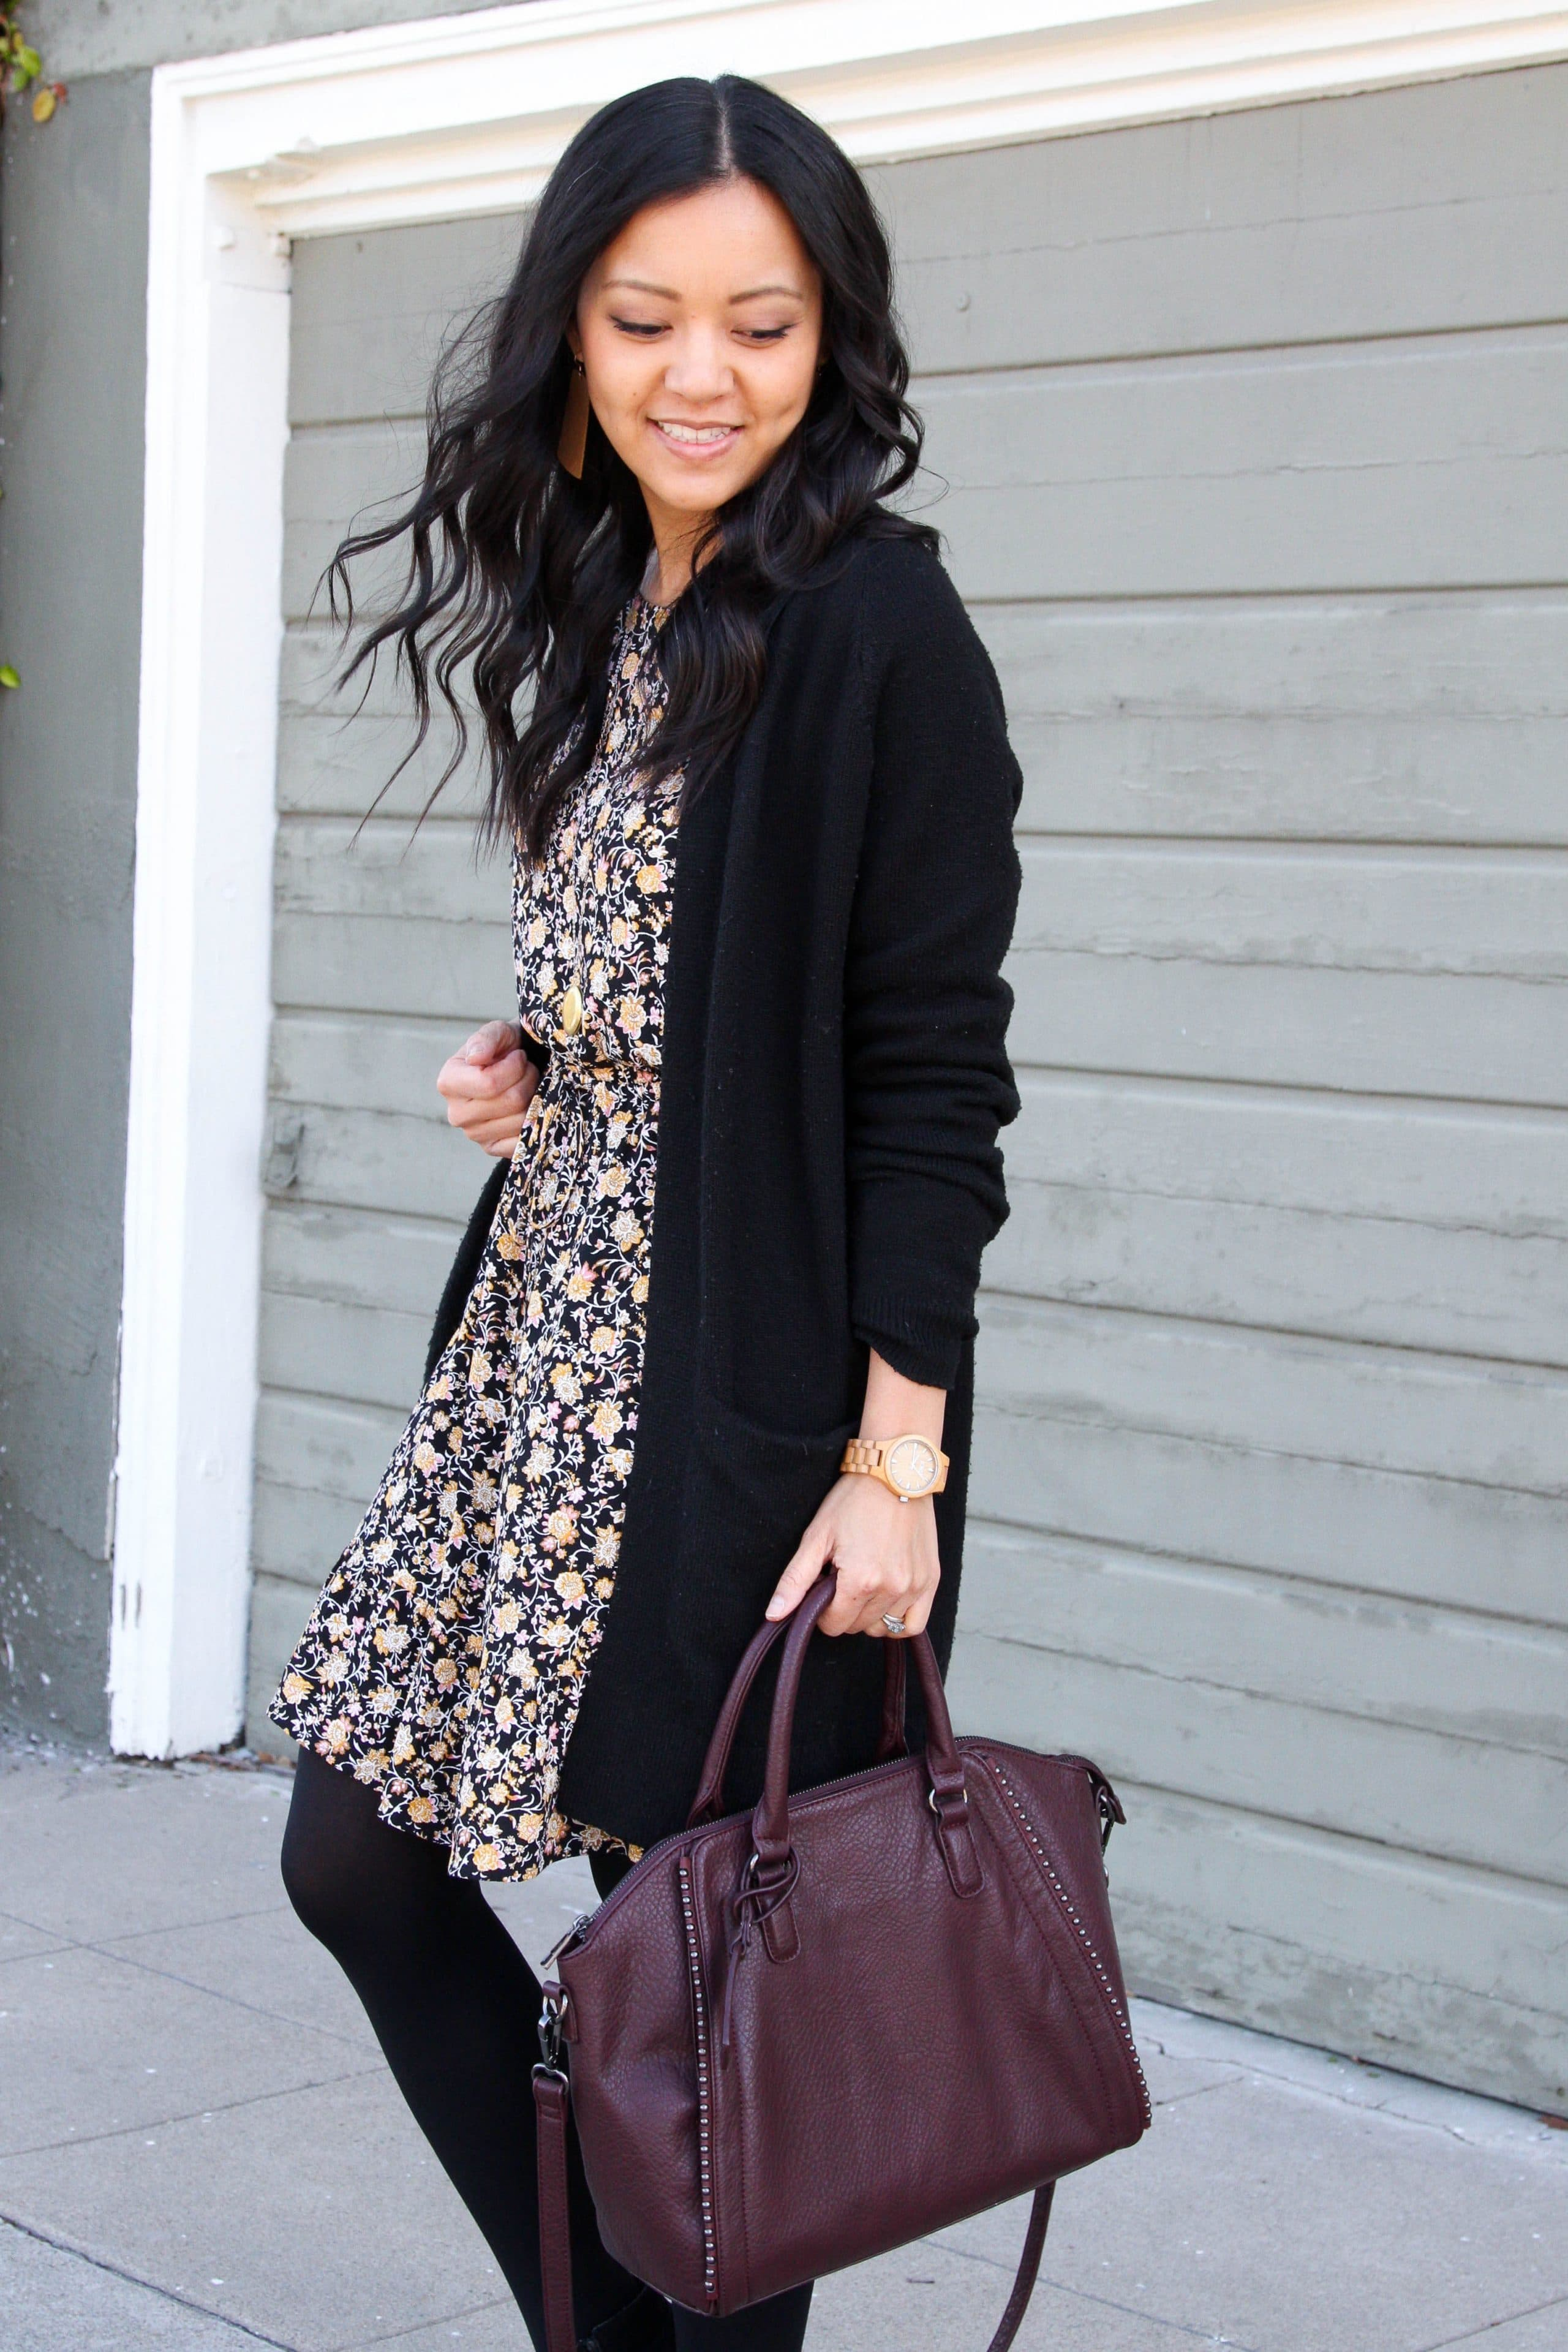 Black Cardigan + Maroon Bag + Black Tights + Black Floral Dress